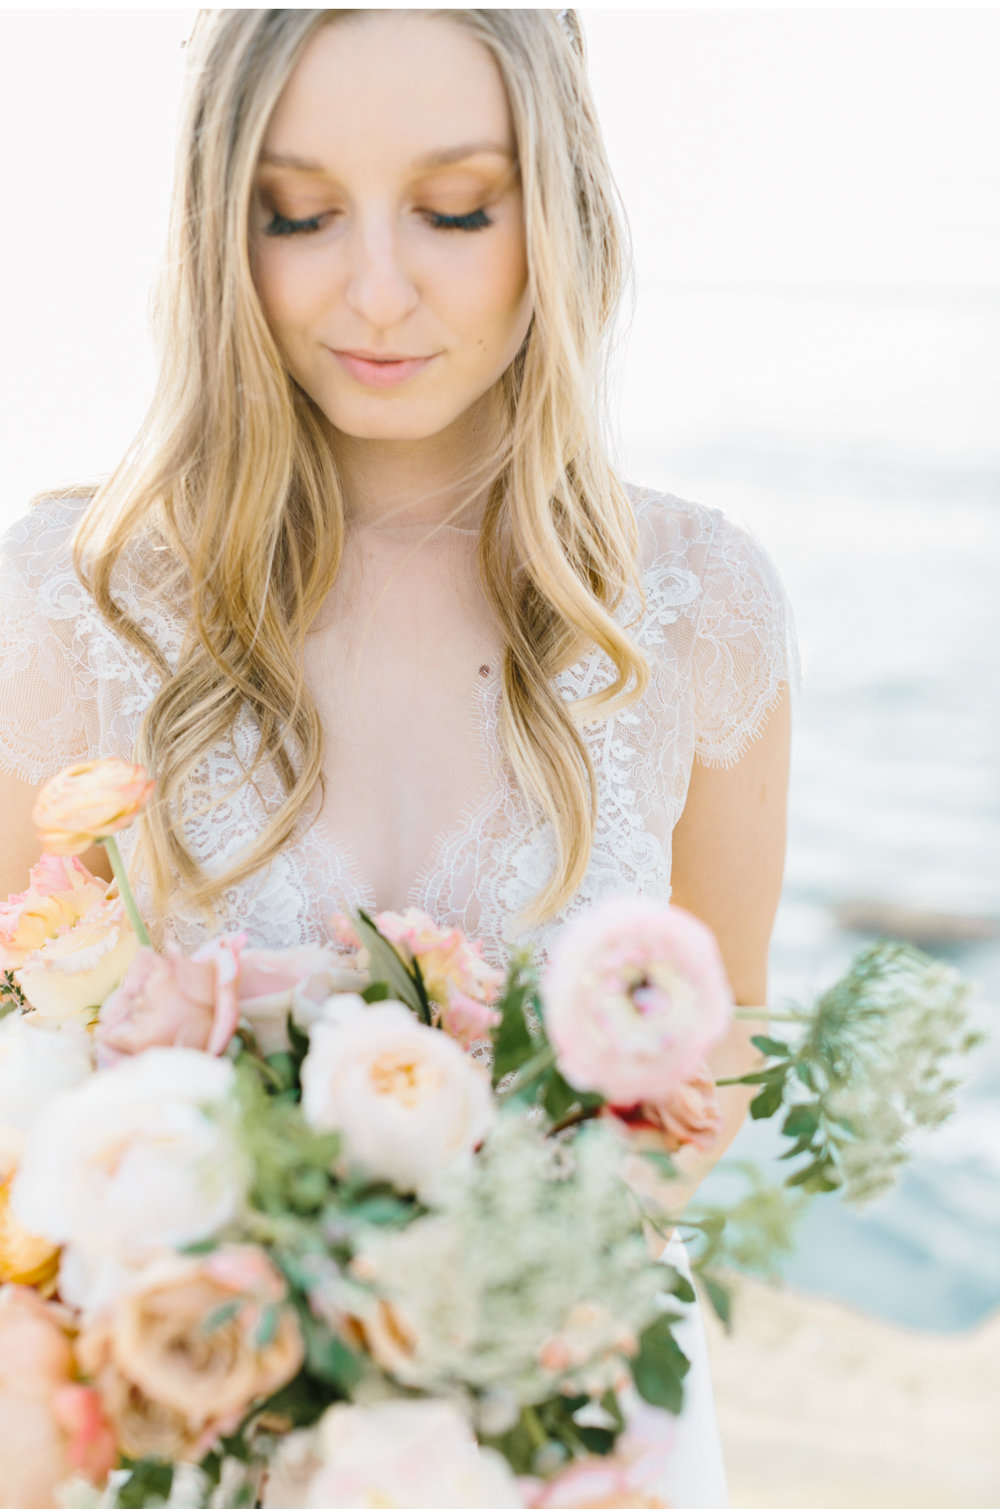 San-Clemente-Wedding-Photographer-Hawaii-Natalie-Schutt-Photography_09.jpg